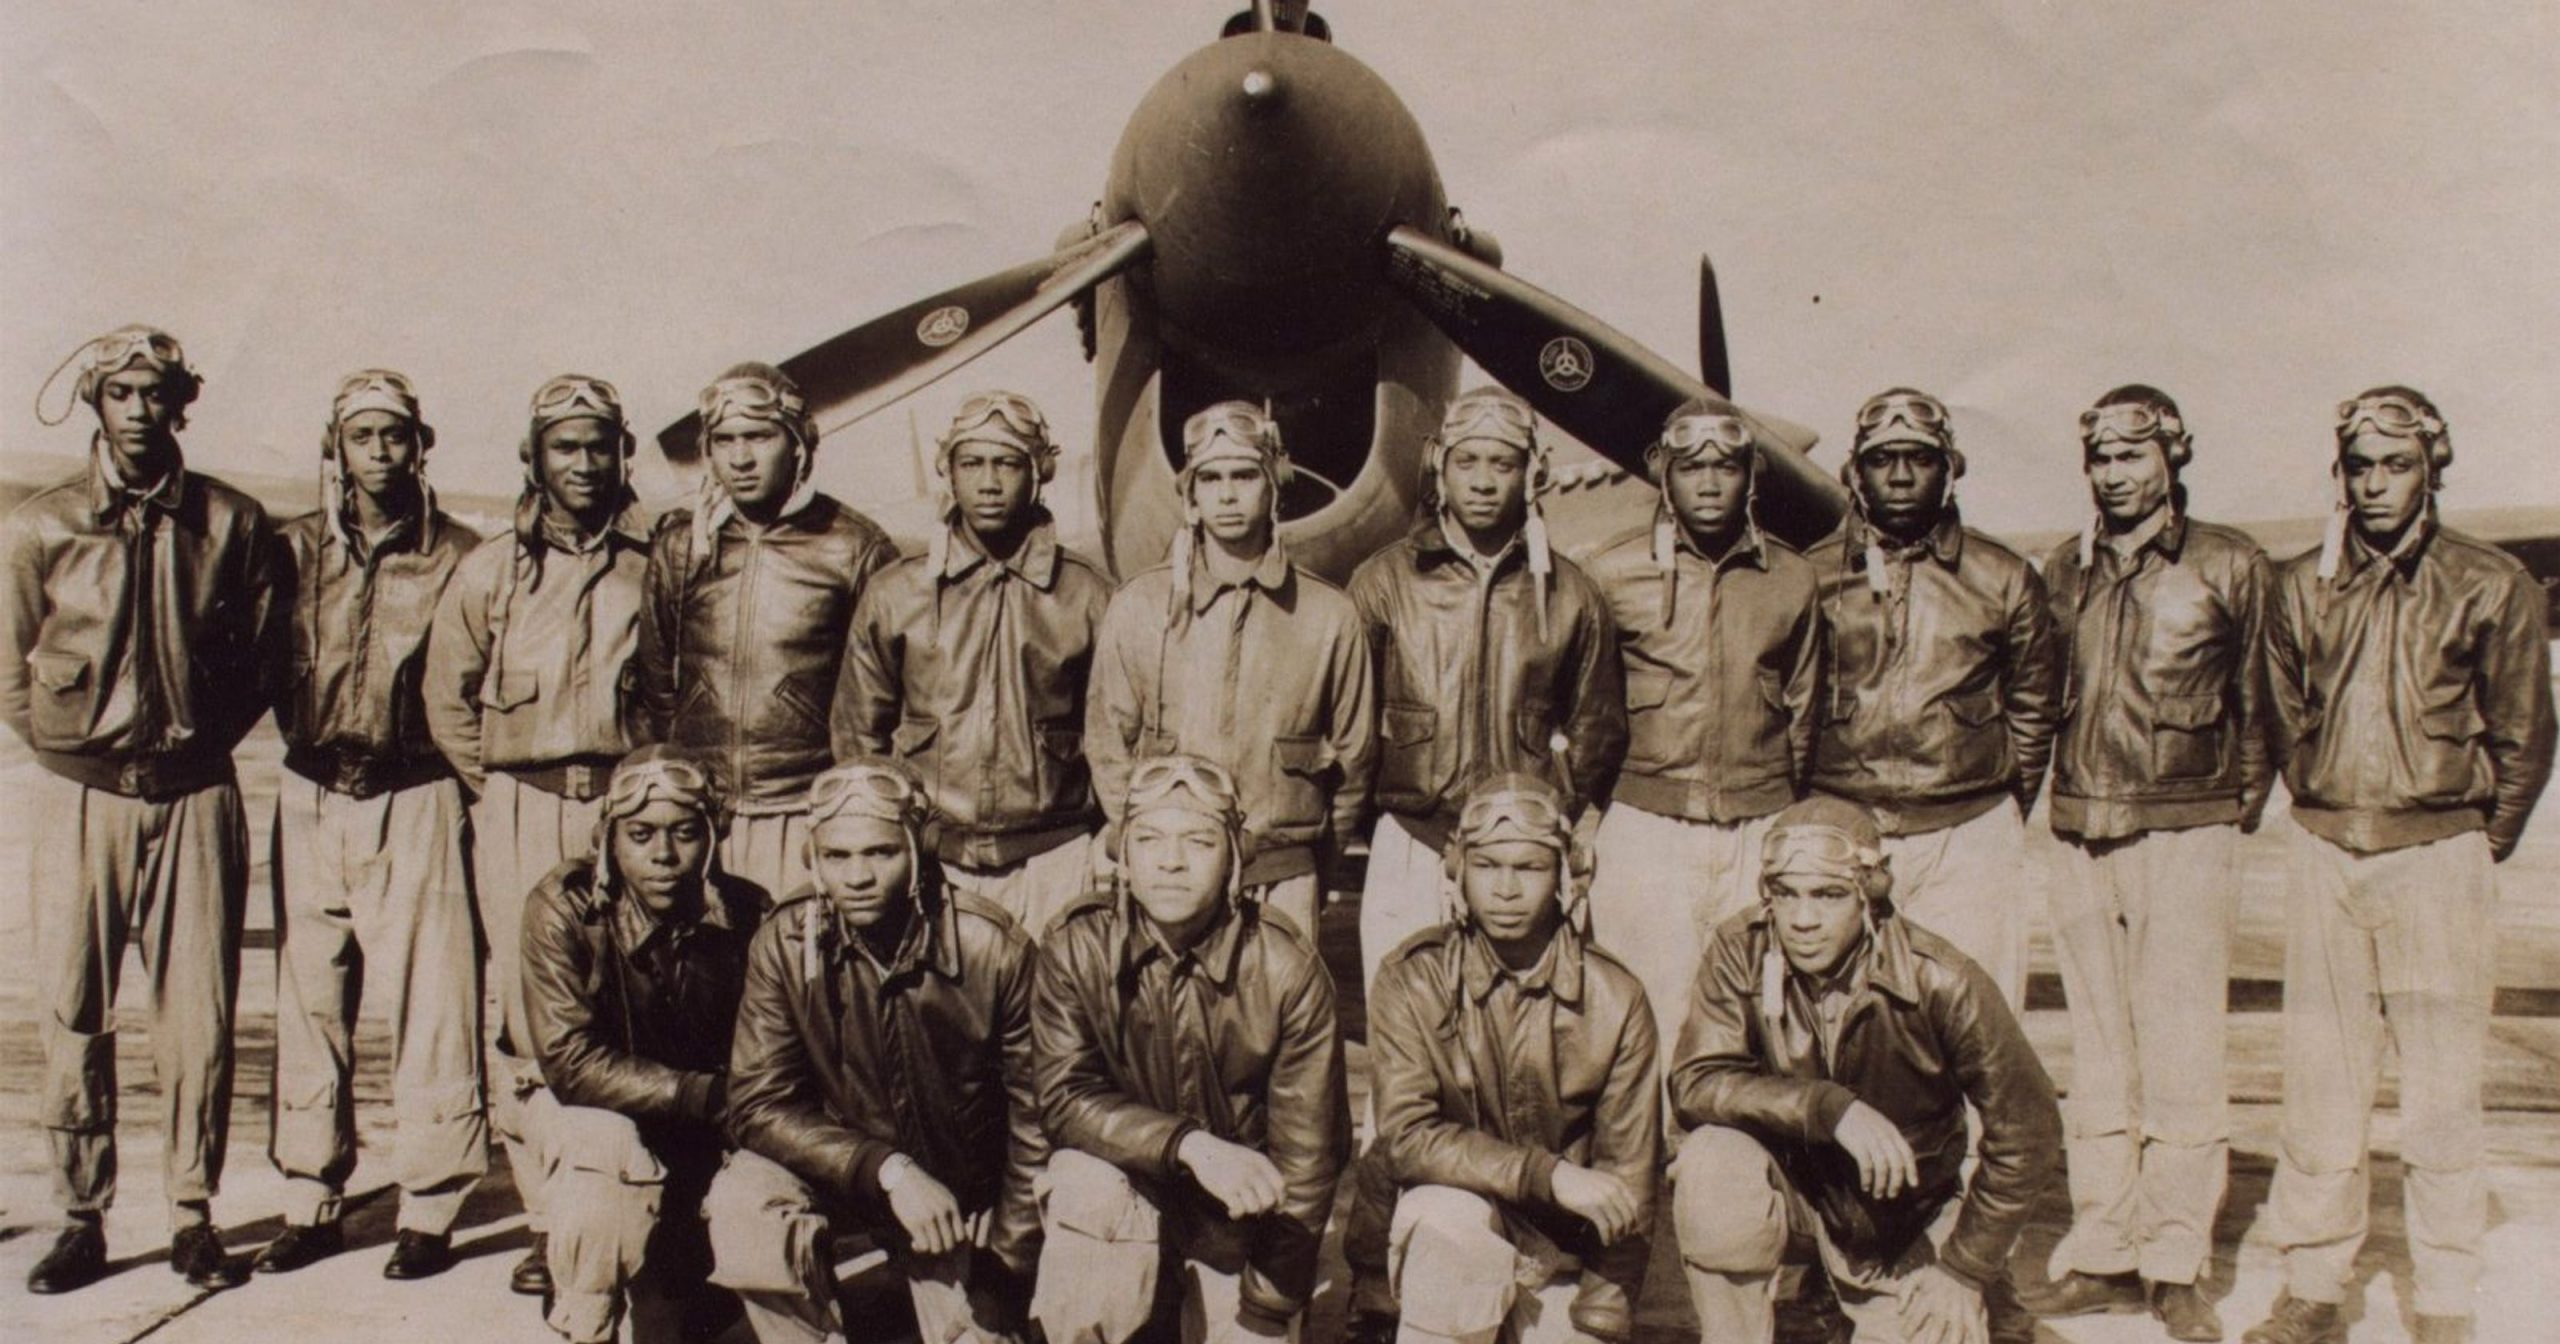 Tuskegee Airmen The African American Military Pilots Of Ww2